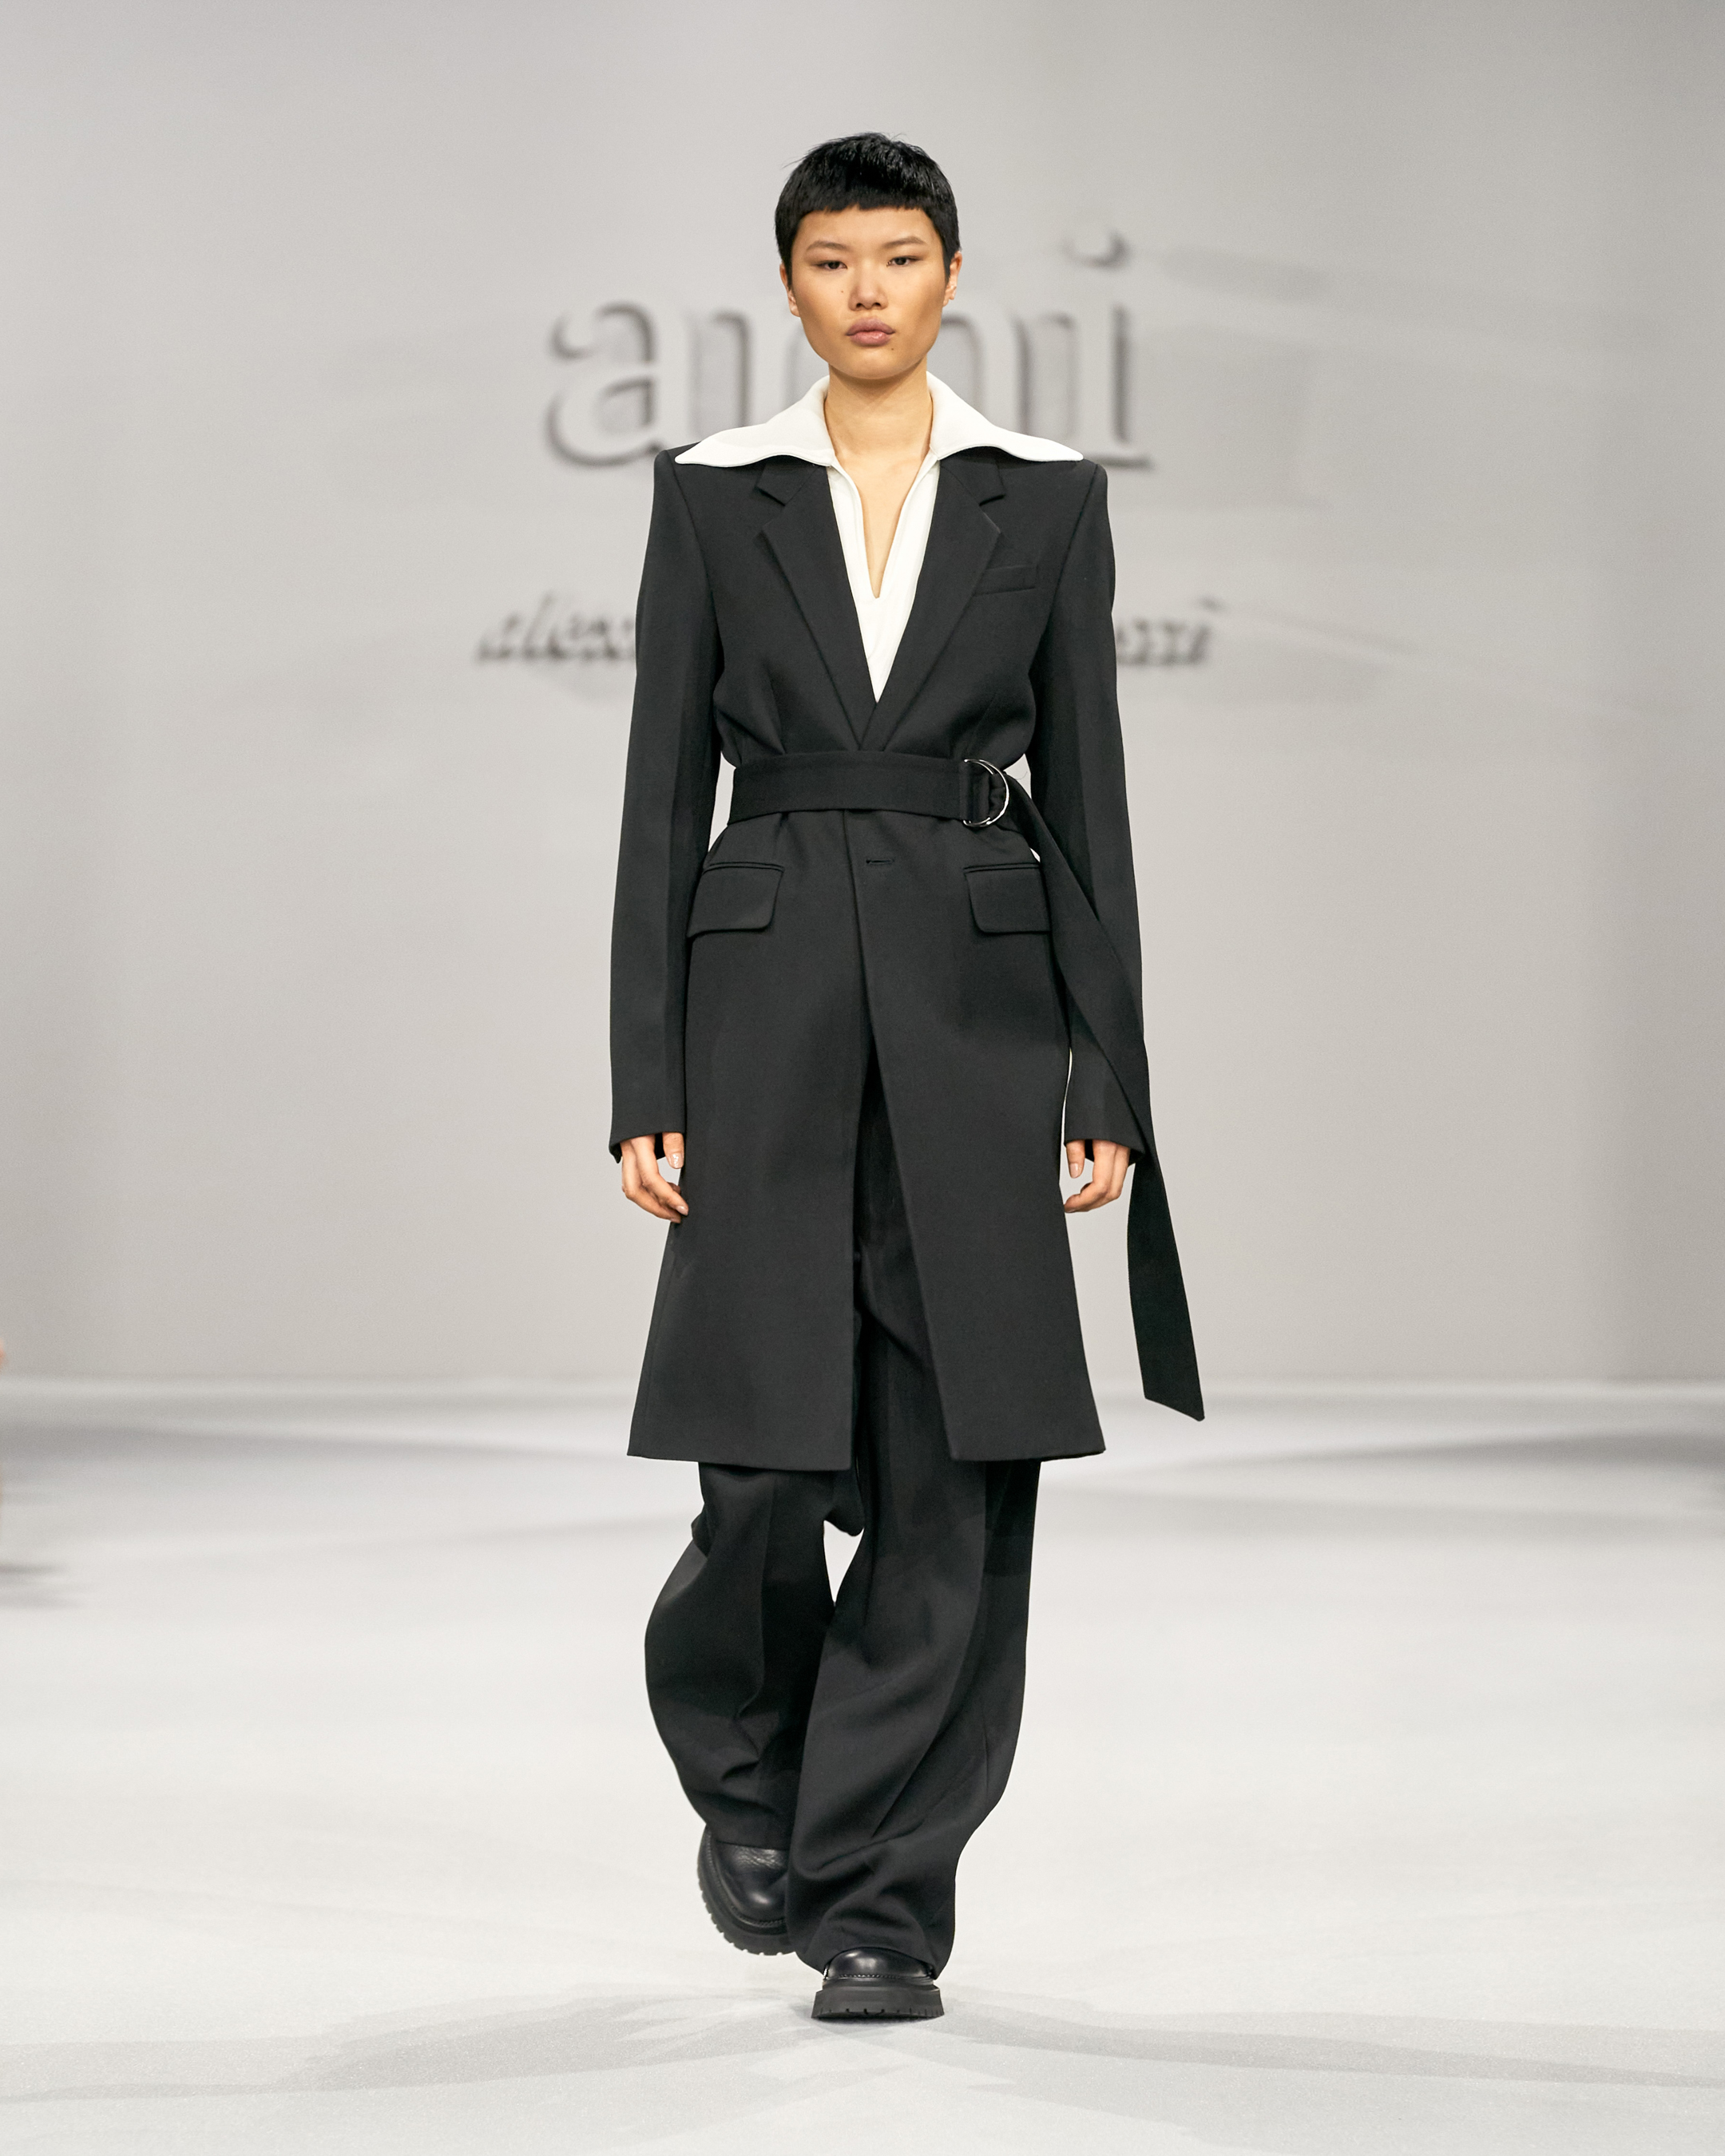 Ami Paris Fall 2021 Fashion Show